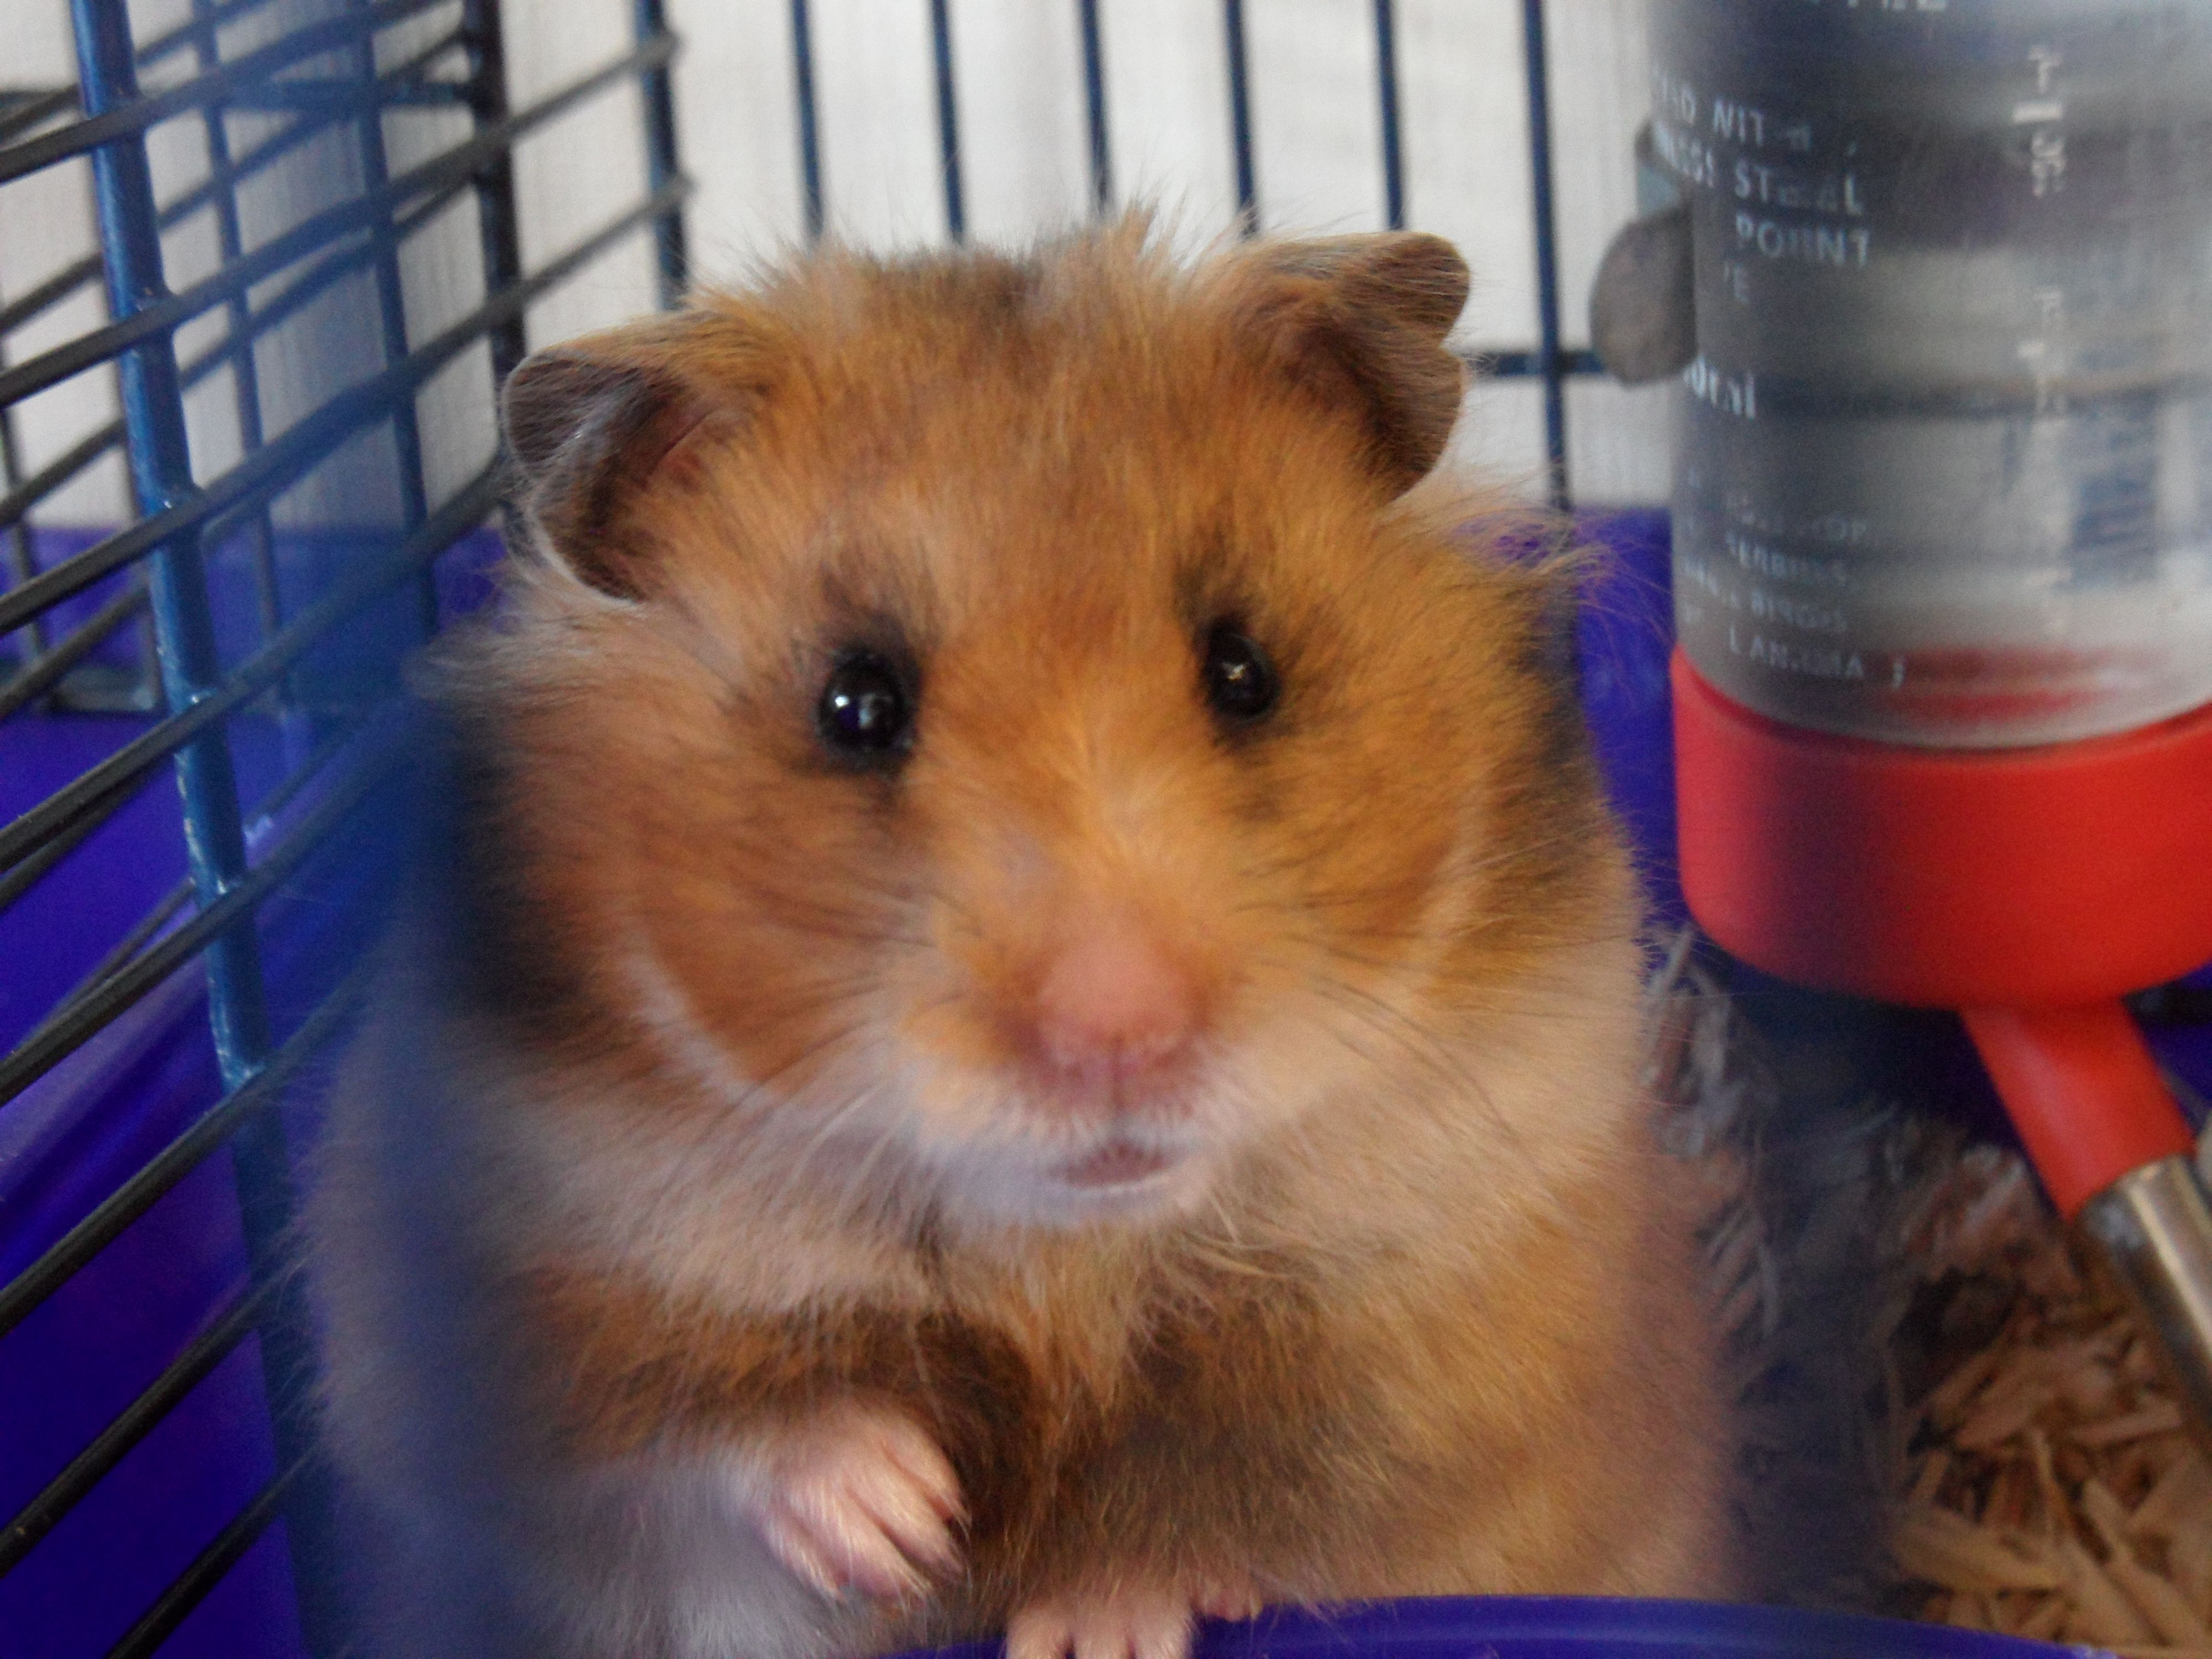 One Of Our Cute Hamsters Available To Buy Now In Our Middlesbrough Uk Pet Shop For More Info See Our Site Http Www Wackypets Co Uk